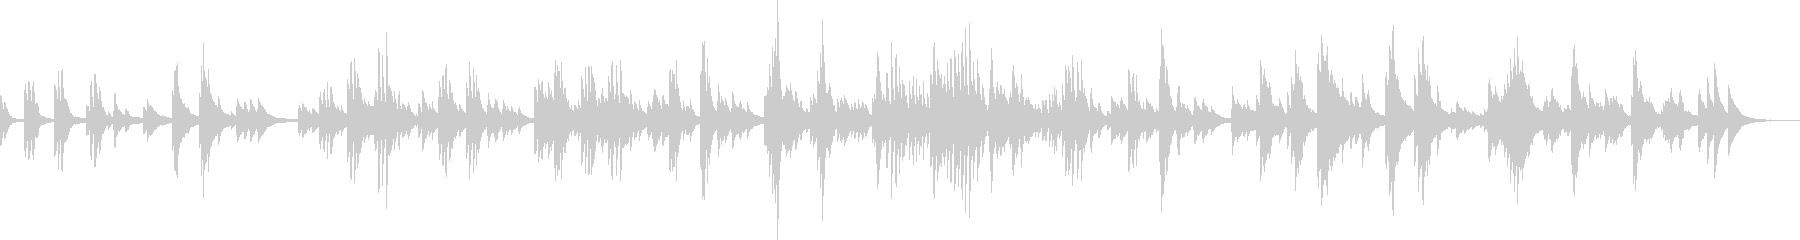 At the end of sadness and despair (piano)'s unreproduced waveform